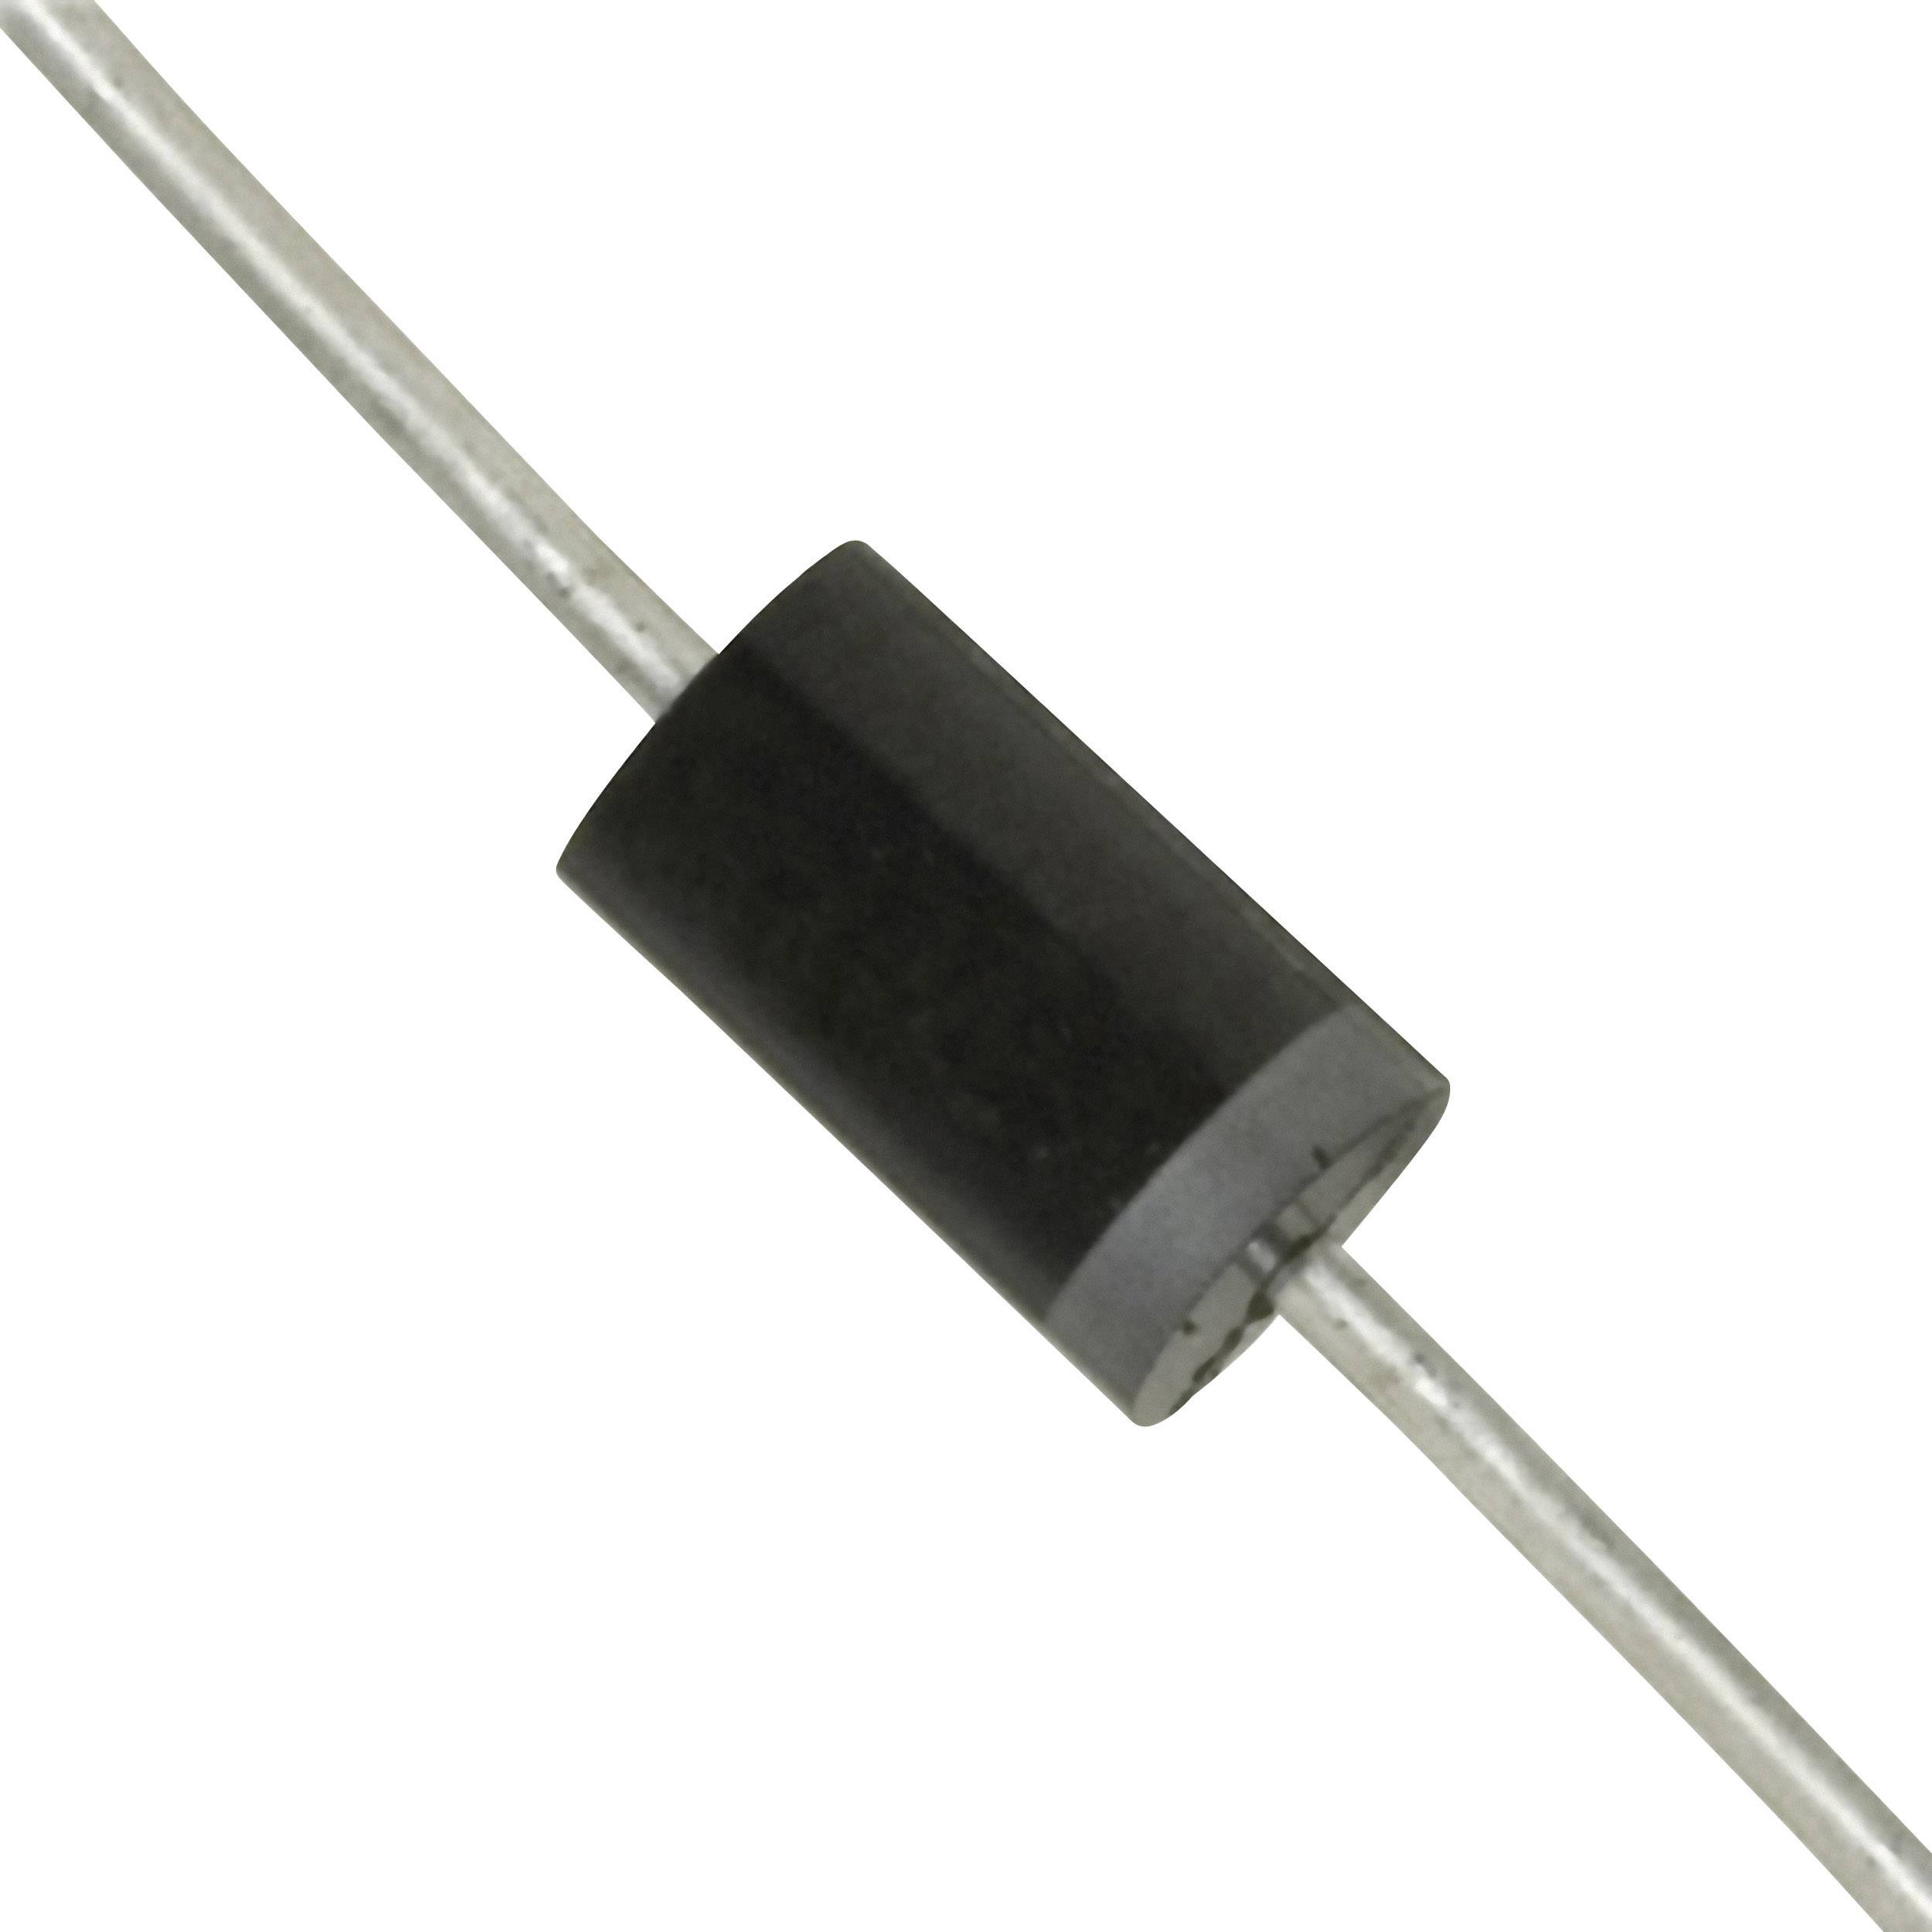 Schottkyho usmerňovacia dióda ON Semiconductor 1N5820, 3 A, 20 V